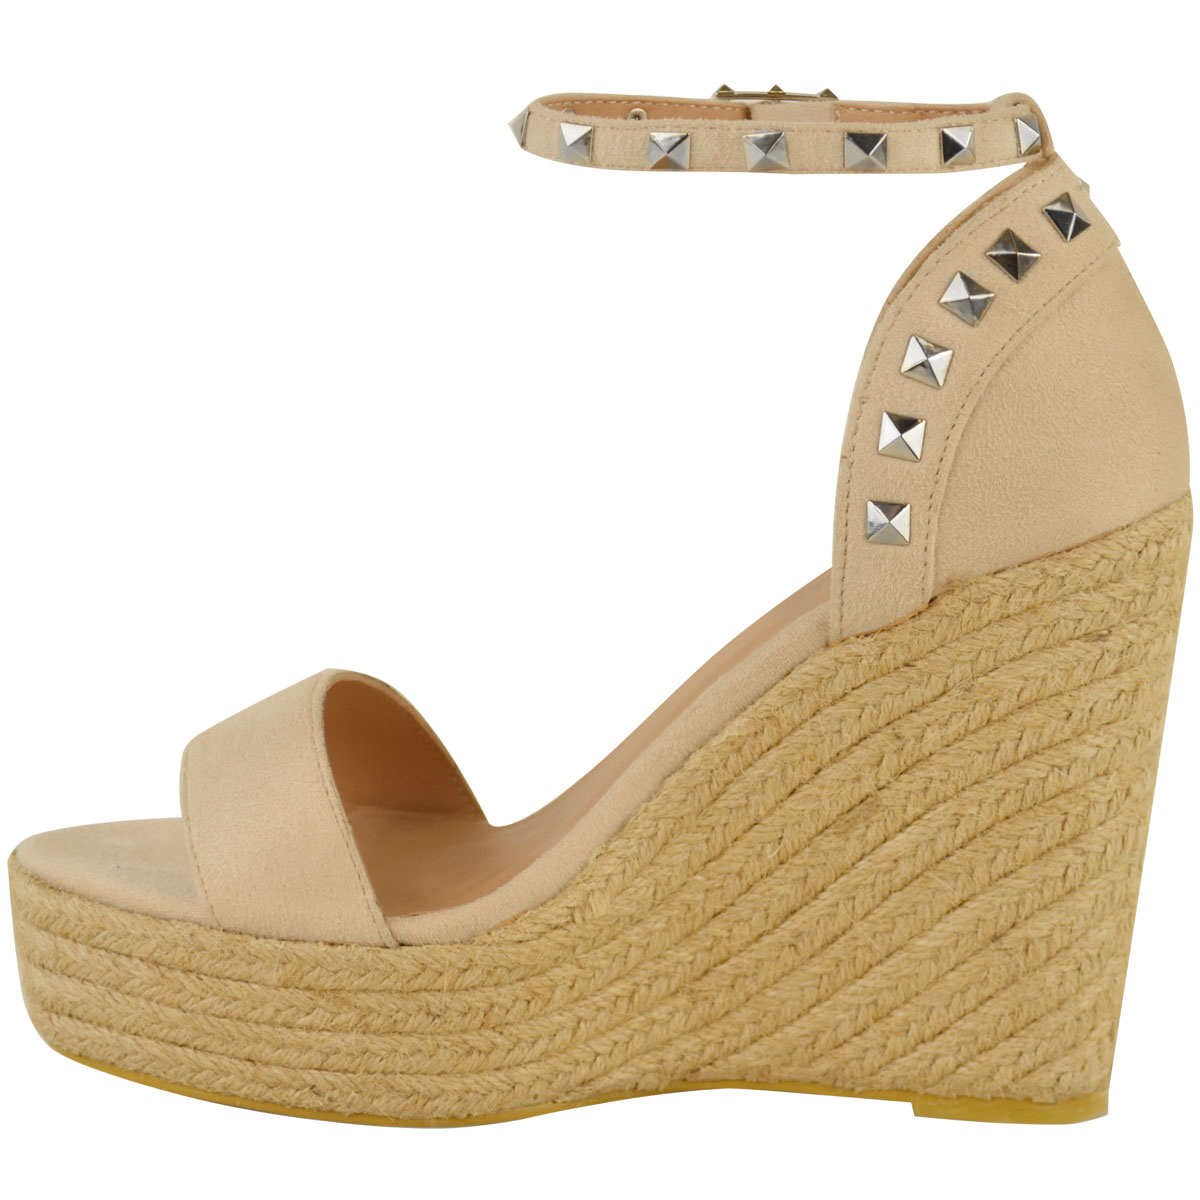 New-Womens-Stud-Espadrille-Wedge-Summer-Sandal-Ladies-Rose-Gold-Party-Shoes-Size thumbnail 12